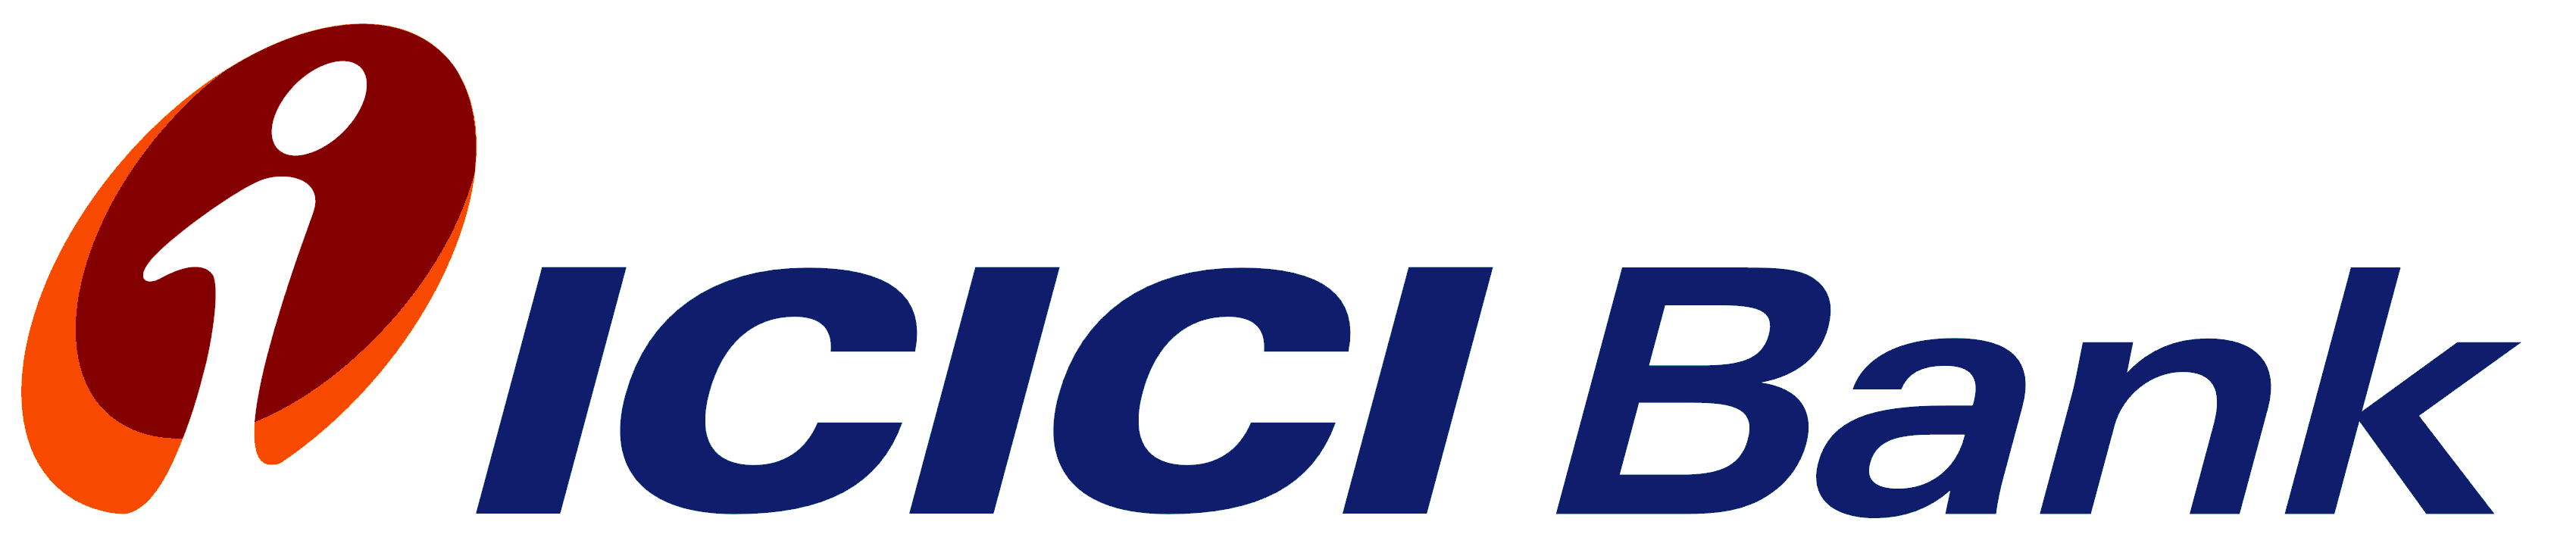 Icici Bank Logos Download